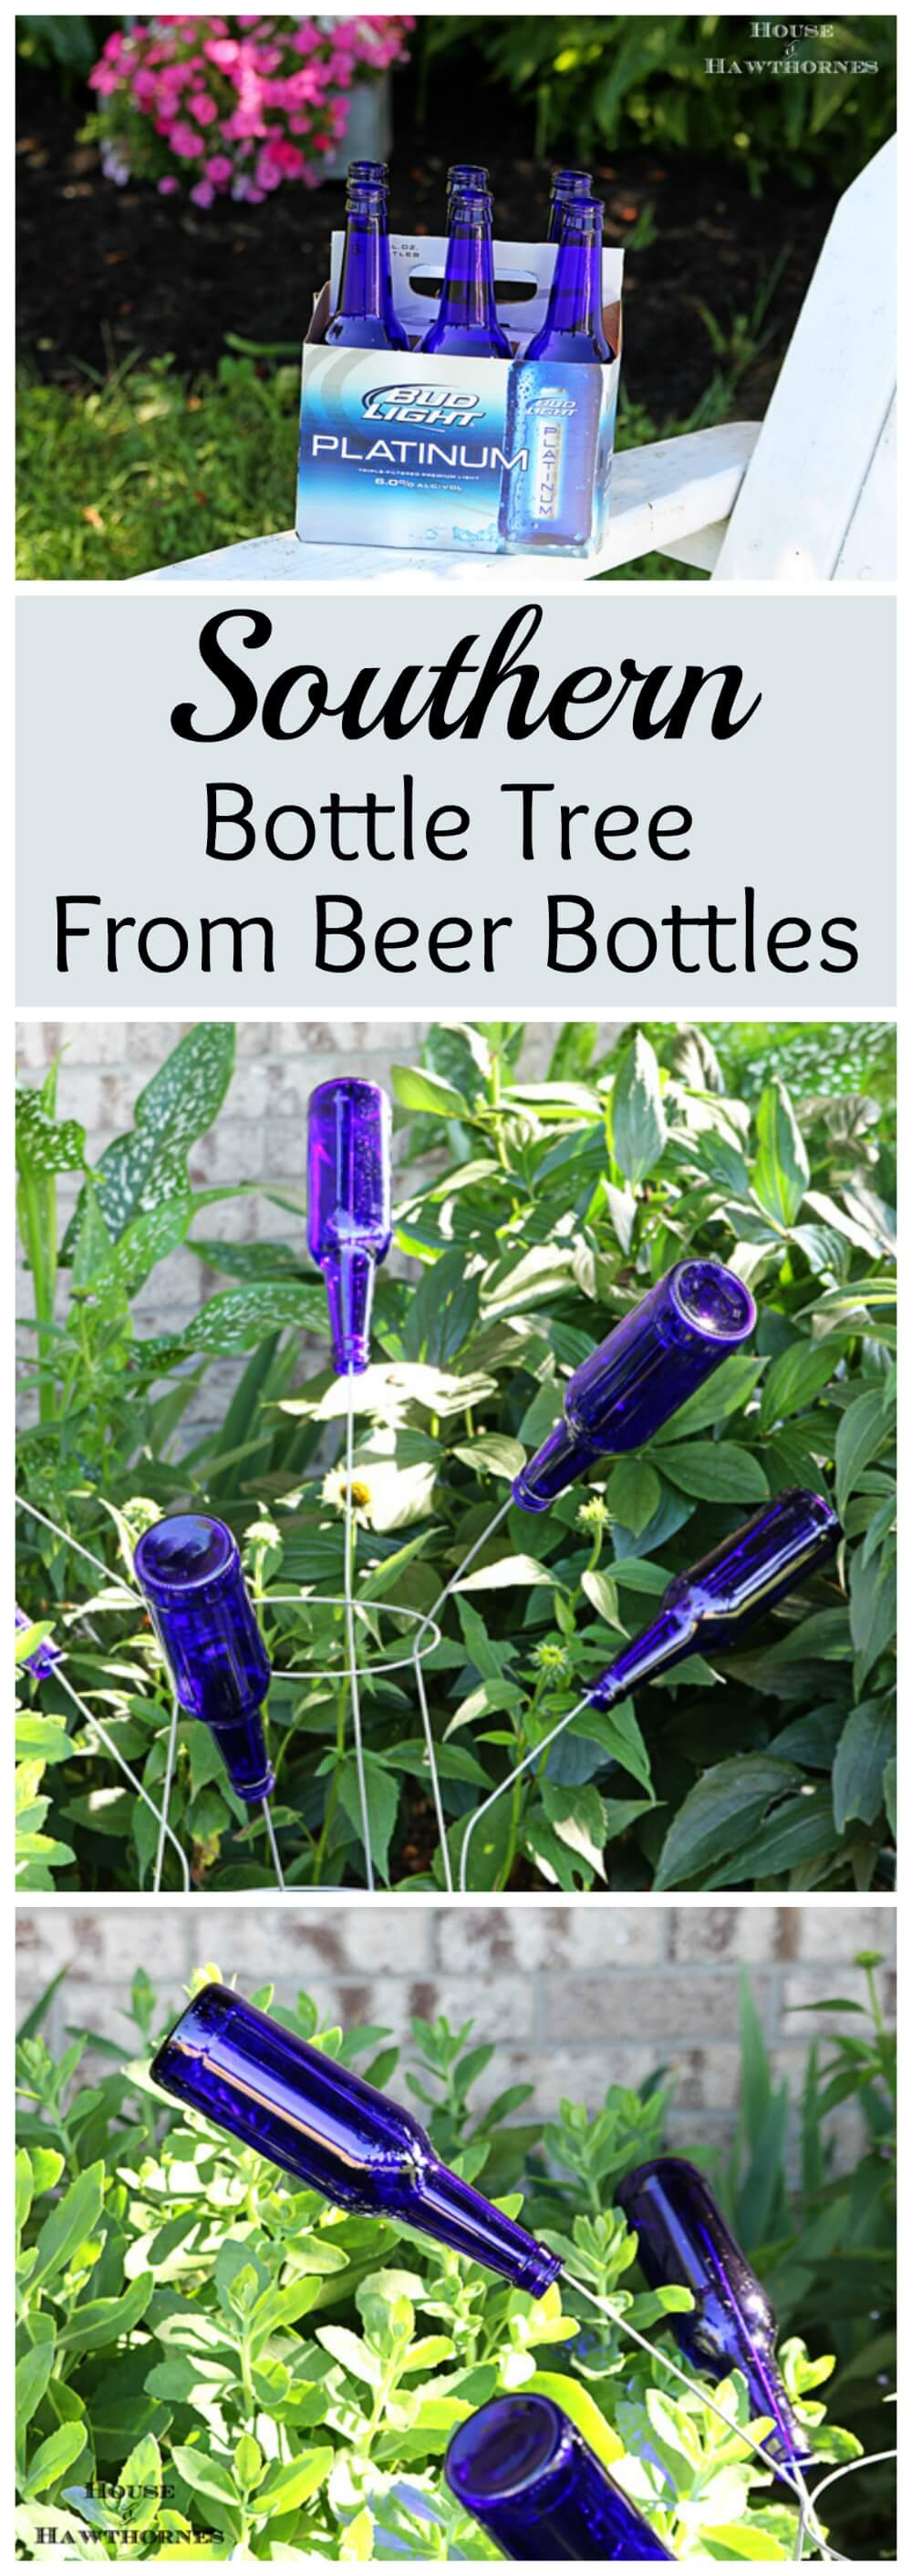 Recycle Your Bottles with this DIY Tree